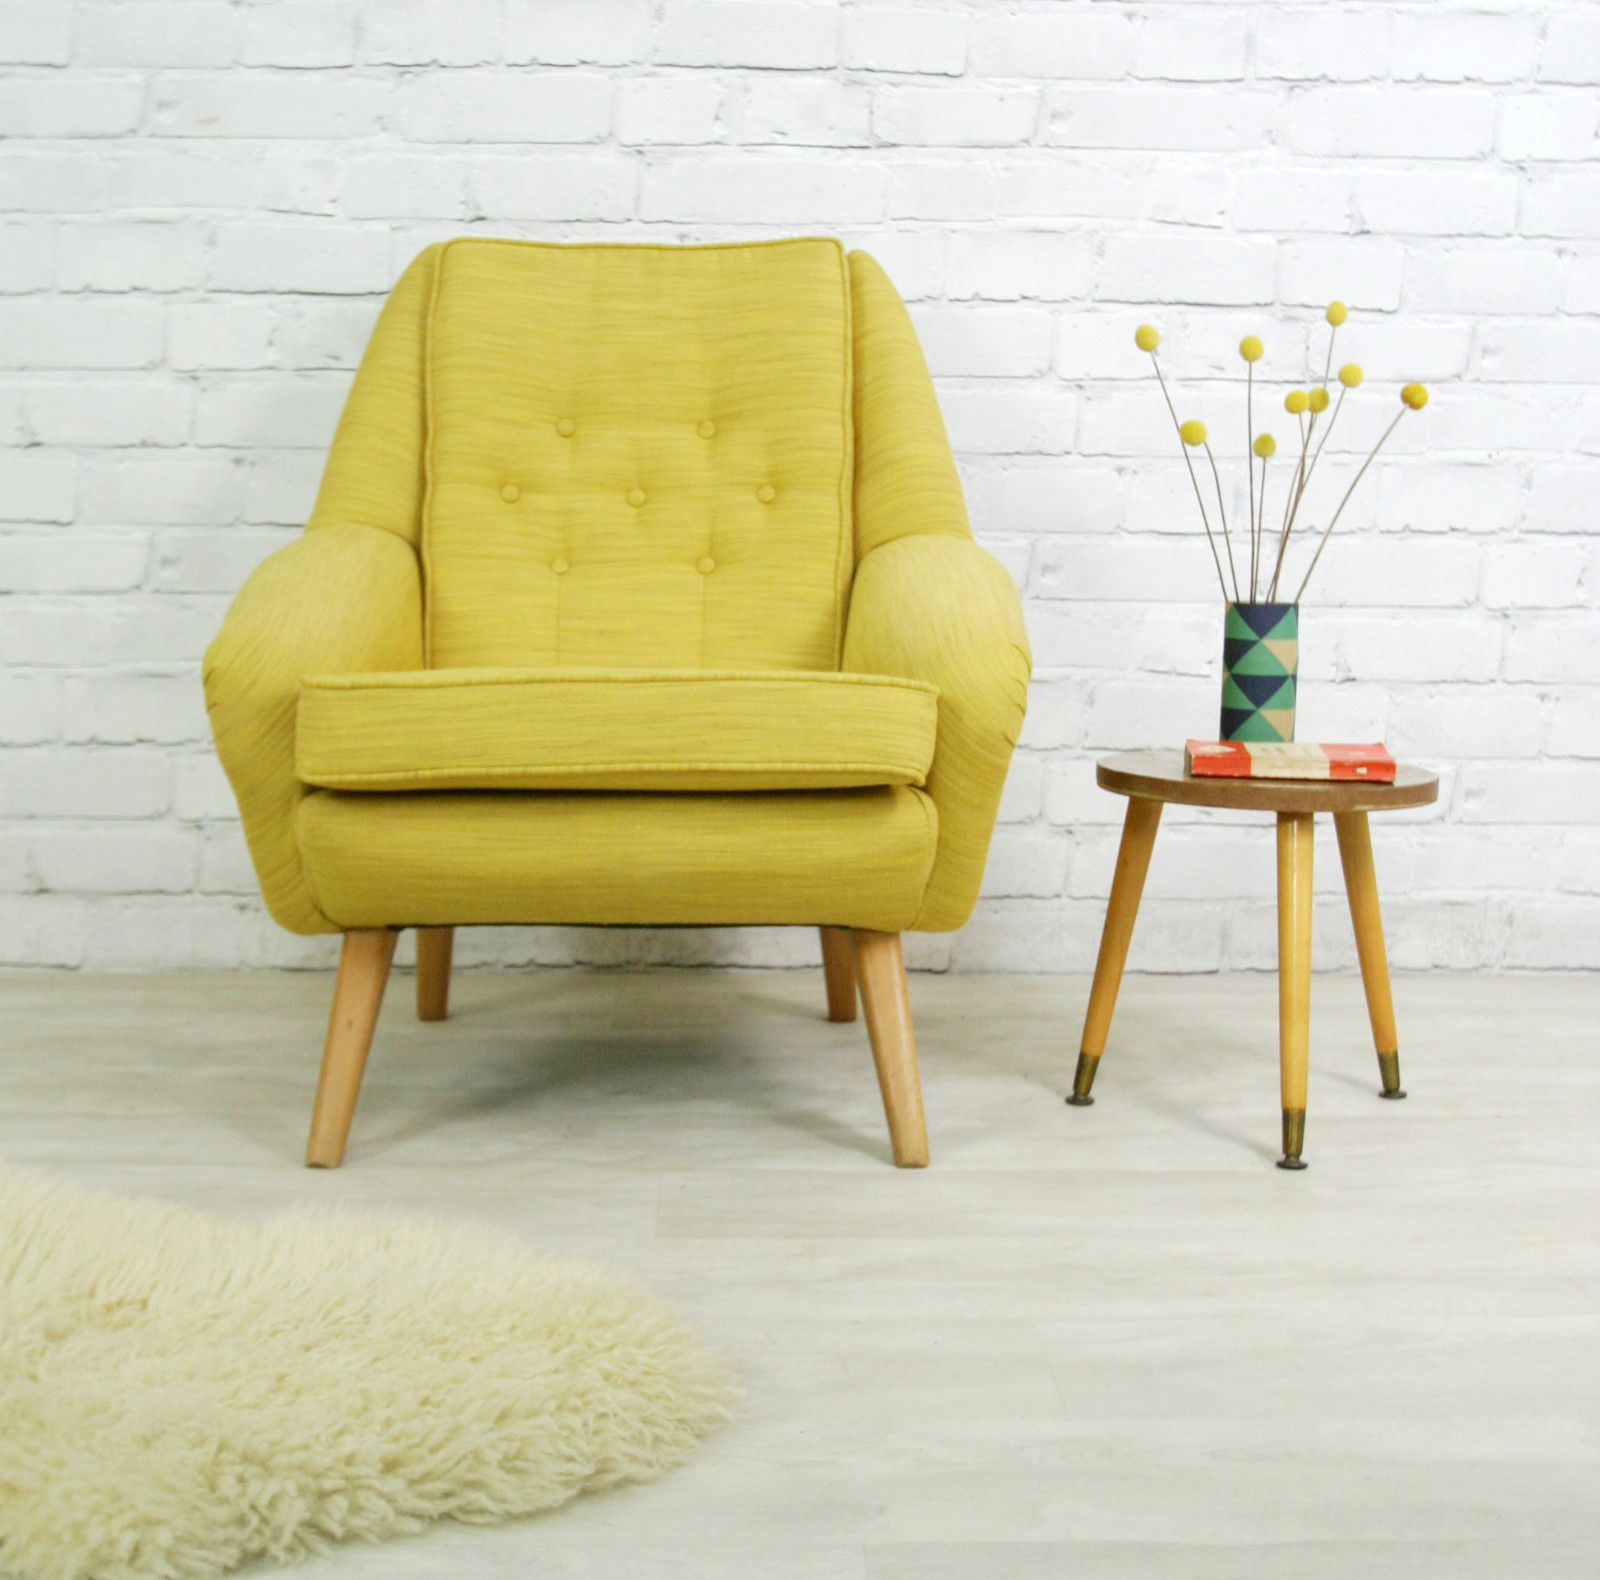 60s Style Couches Vintage Retro Mid Century Mustard Danish Style Armchair